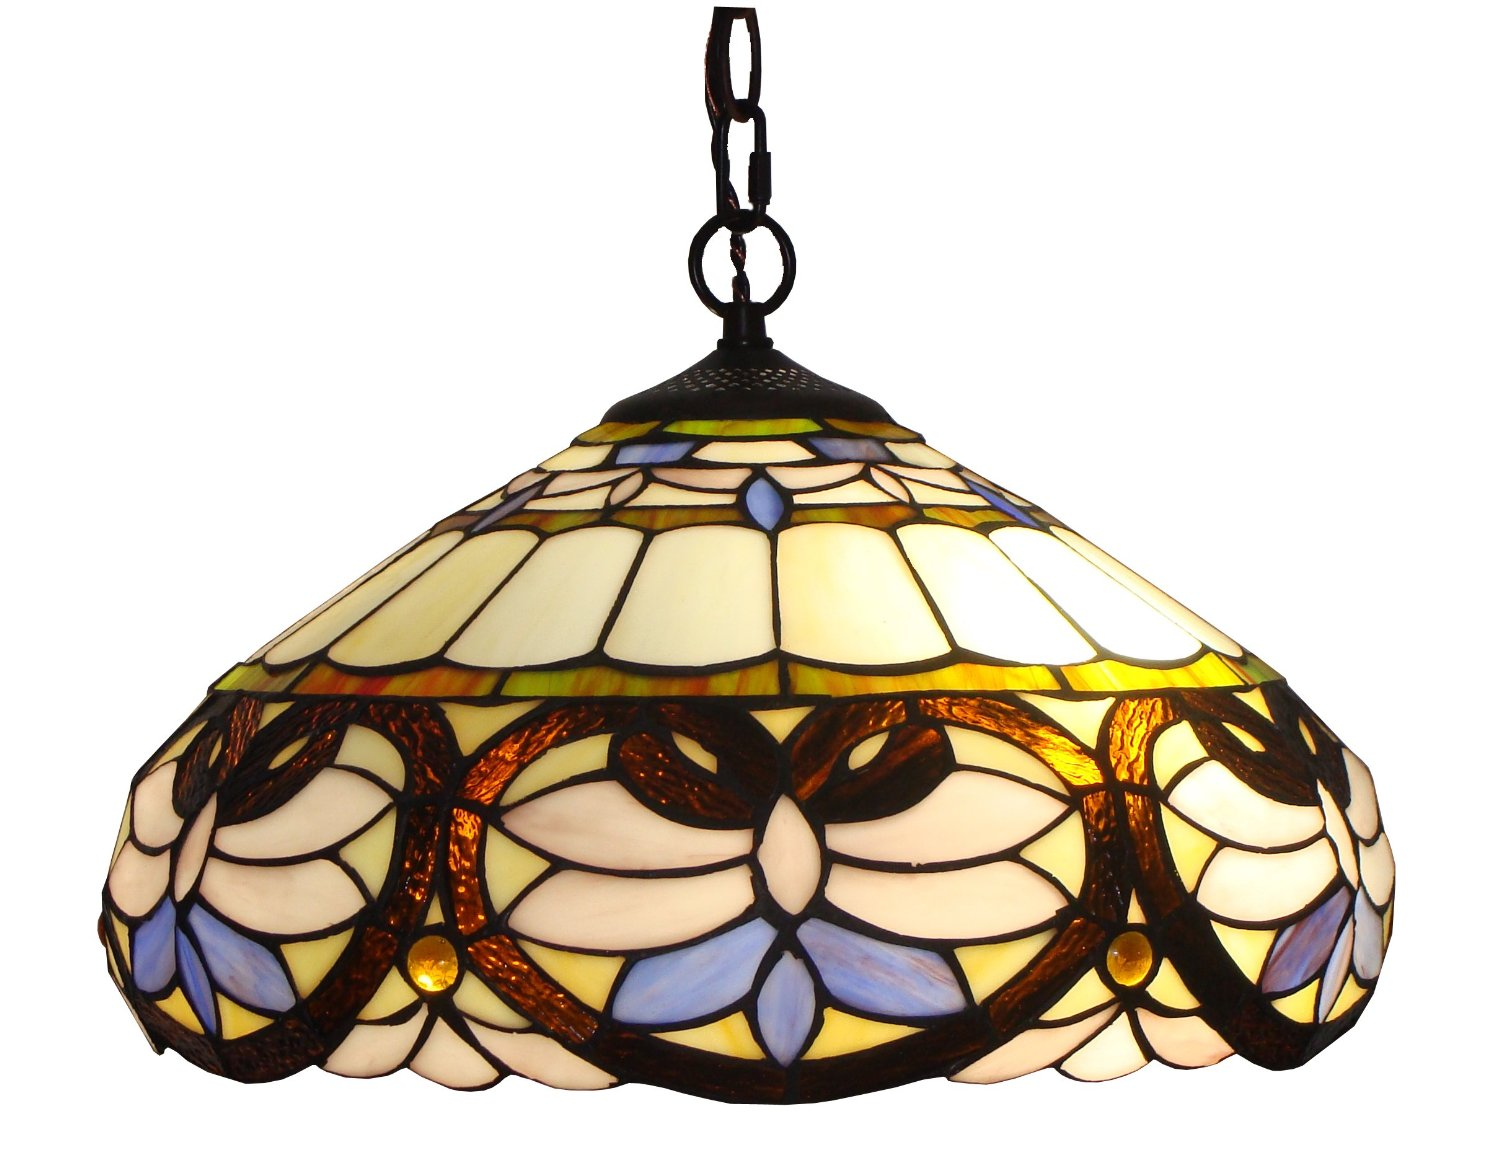 lamp chloe pendant light victorian inverted lamps ceiling style loretta lighting inc tiffany